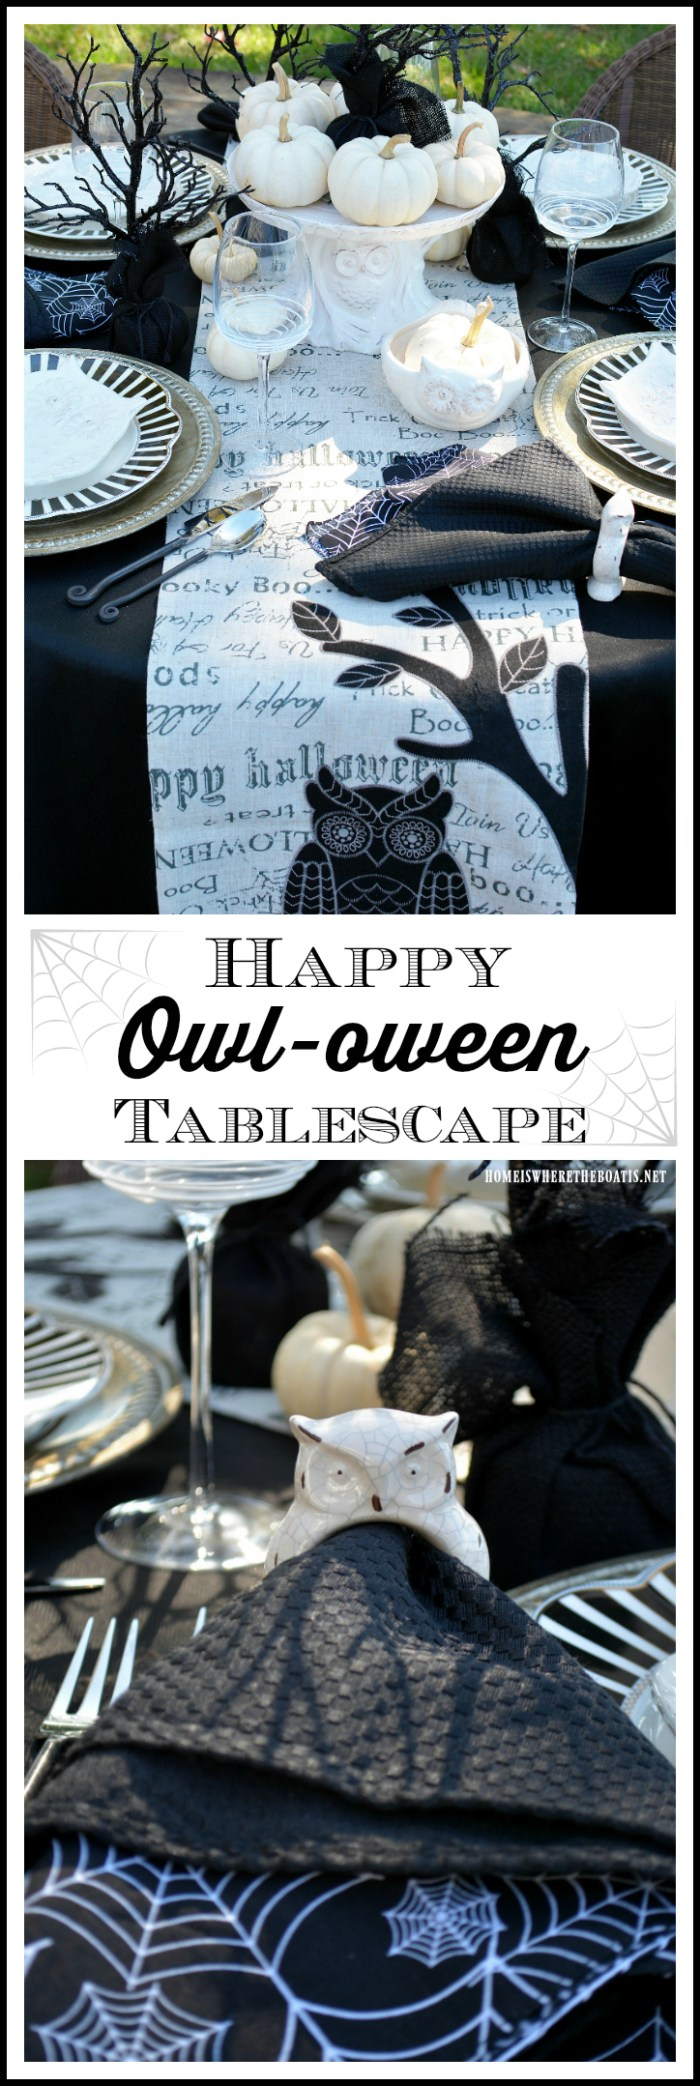 happy-owl-oween-table